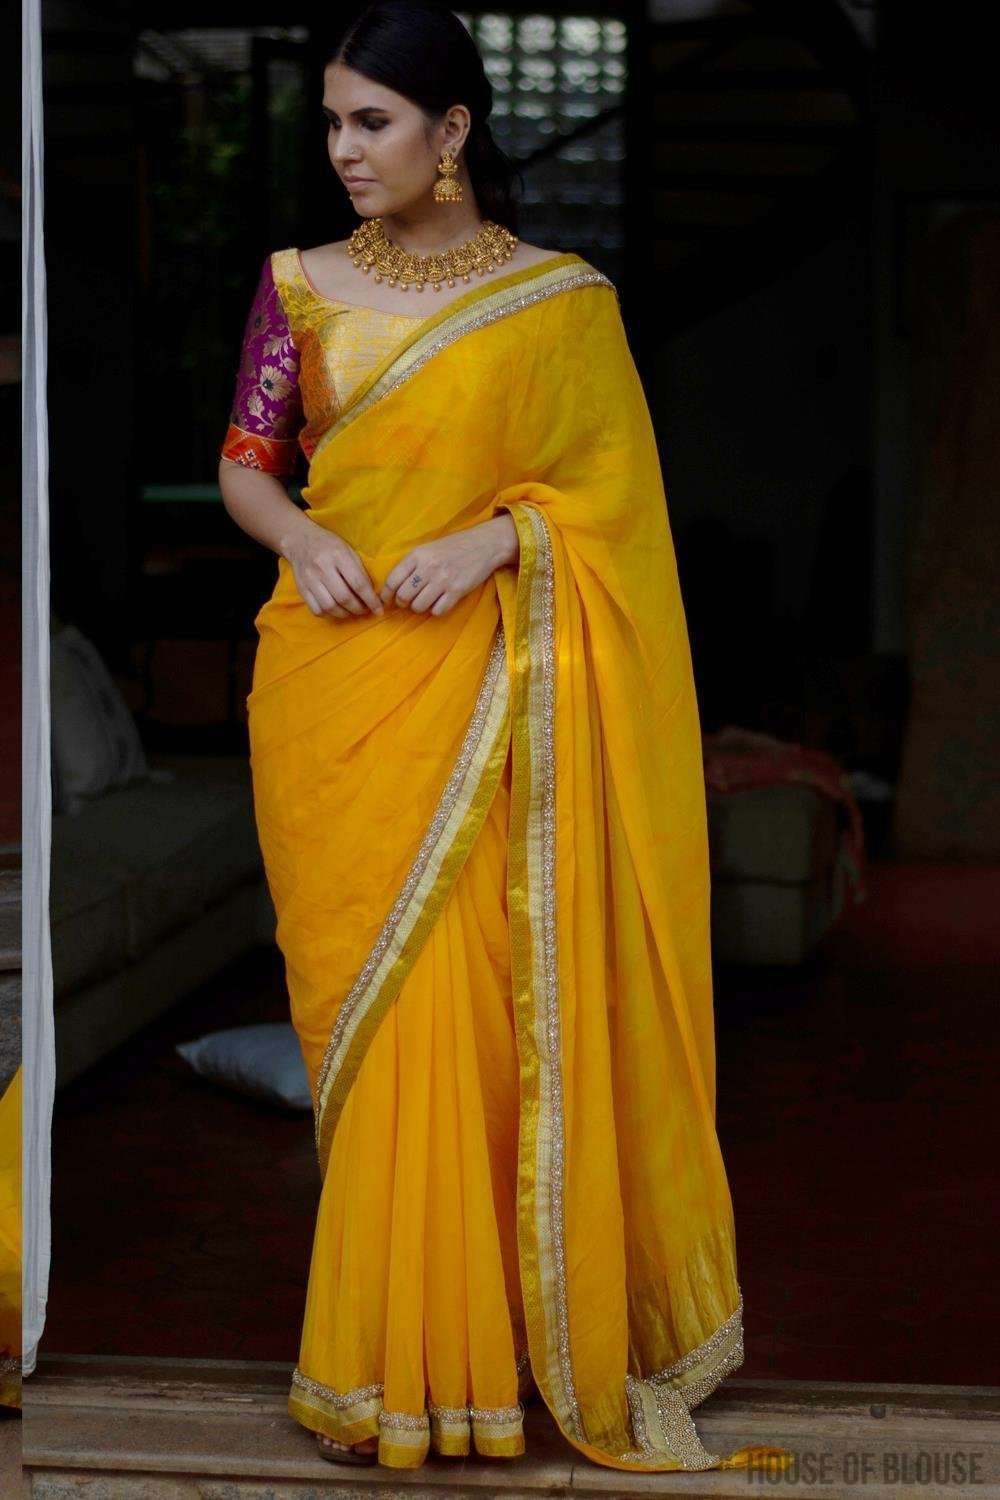 Shibori dyed pure chiffon saree in bright yellow - House of Blouse